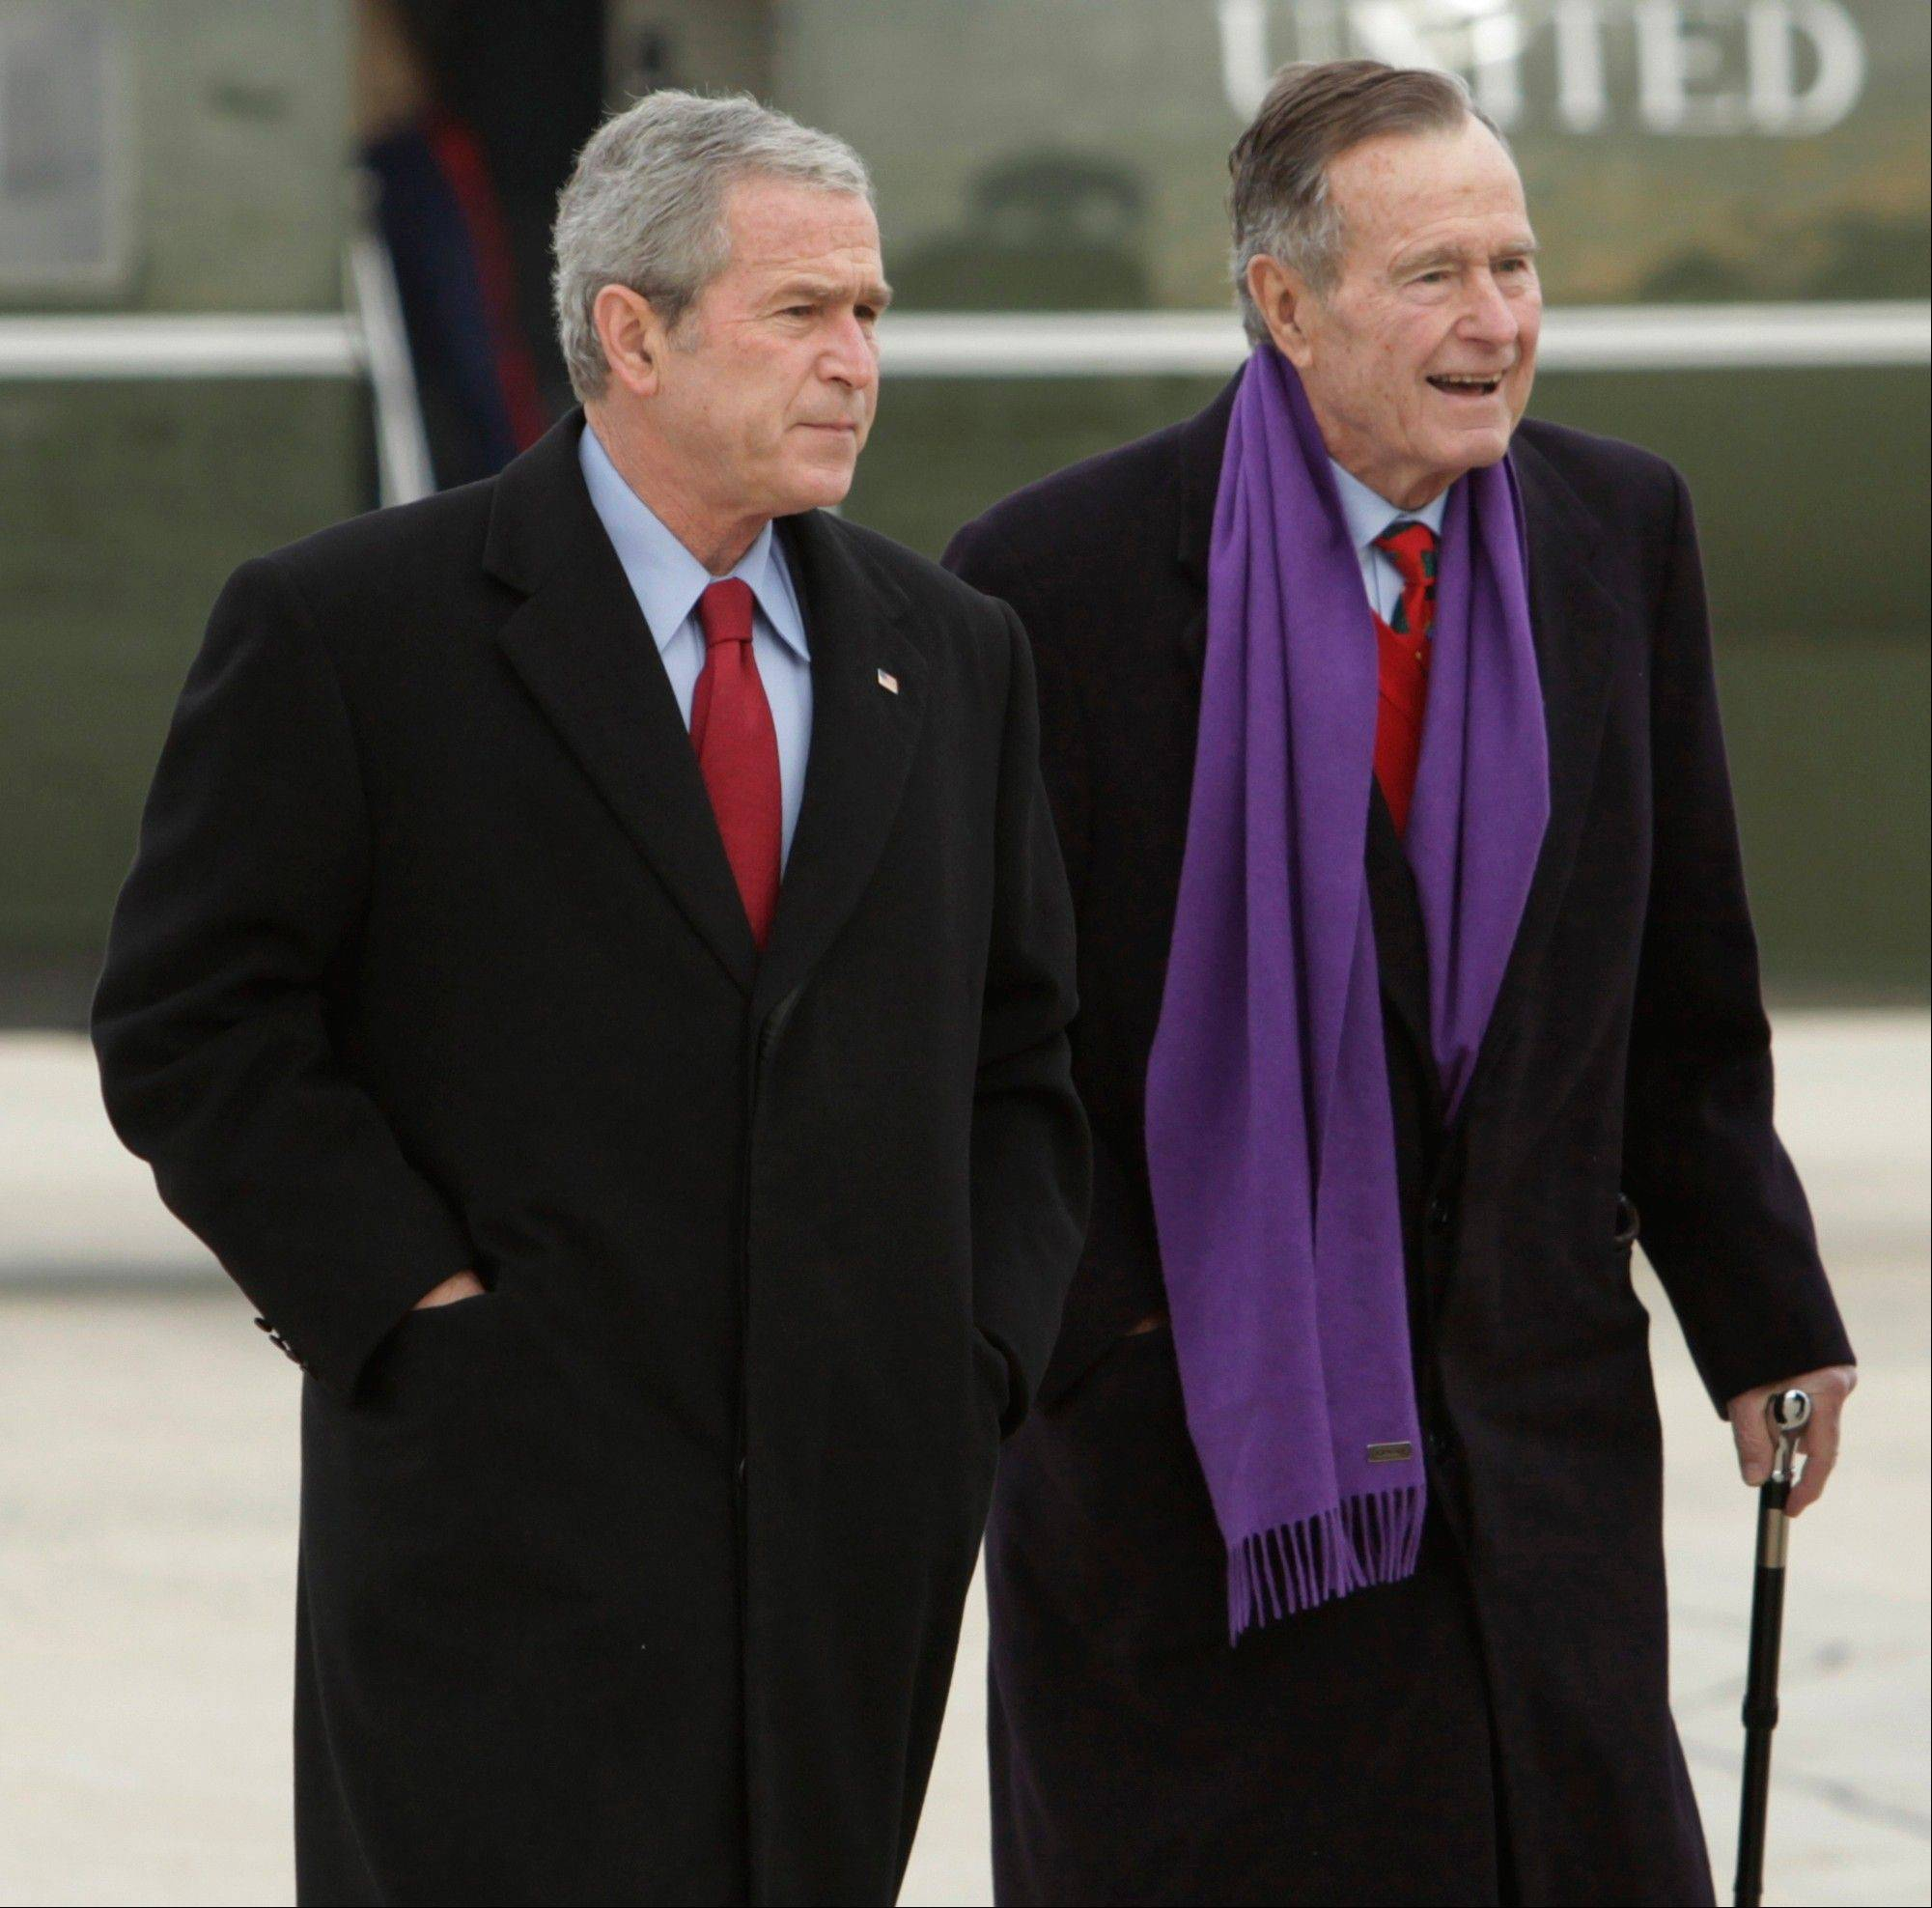 A criminal investigation is under way after a hacker apparently accessed private photos and emails sent between members of the Bush family, including both former presidents.